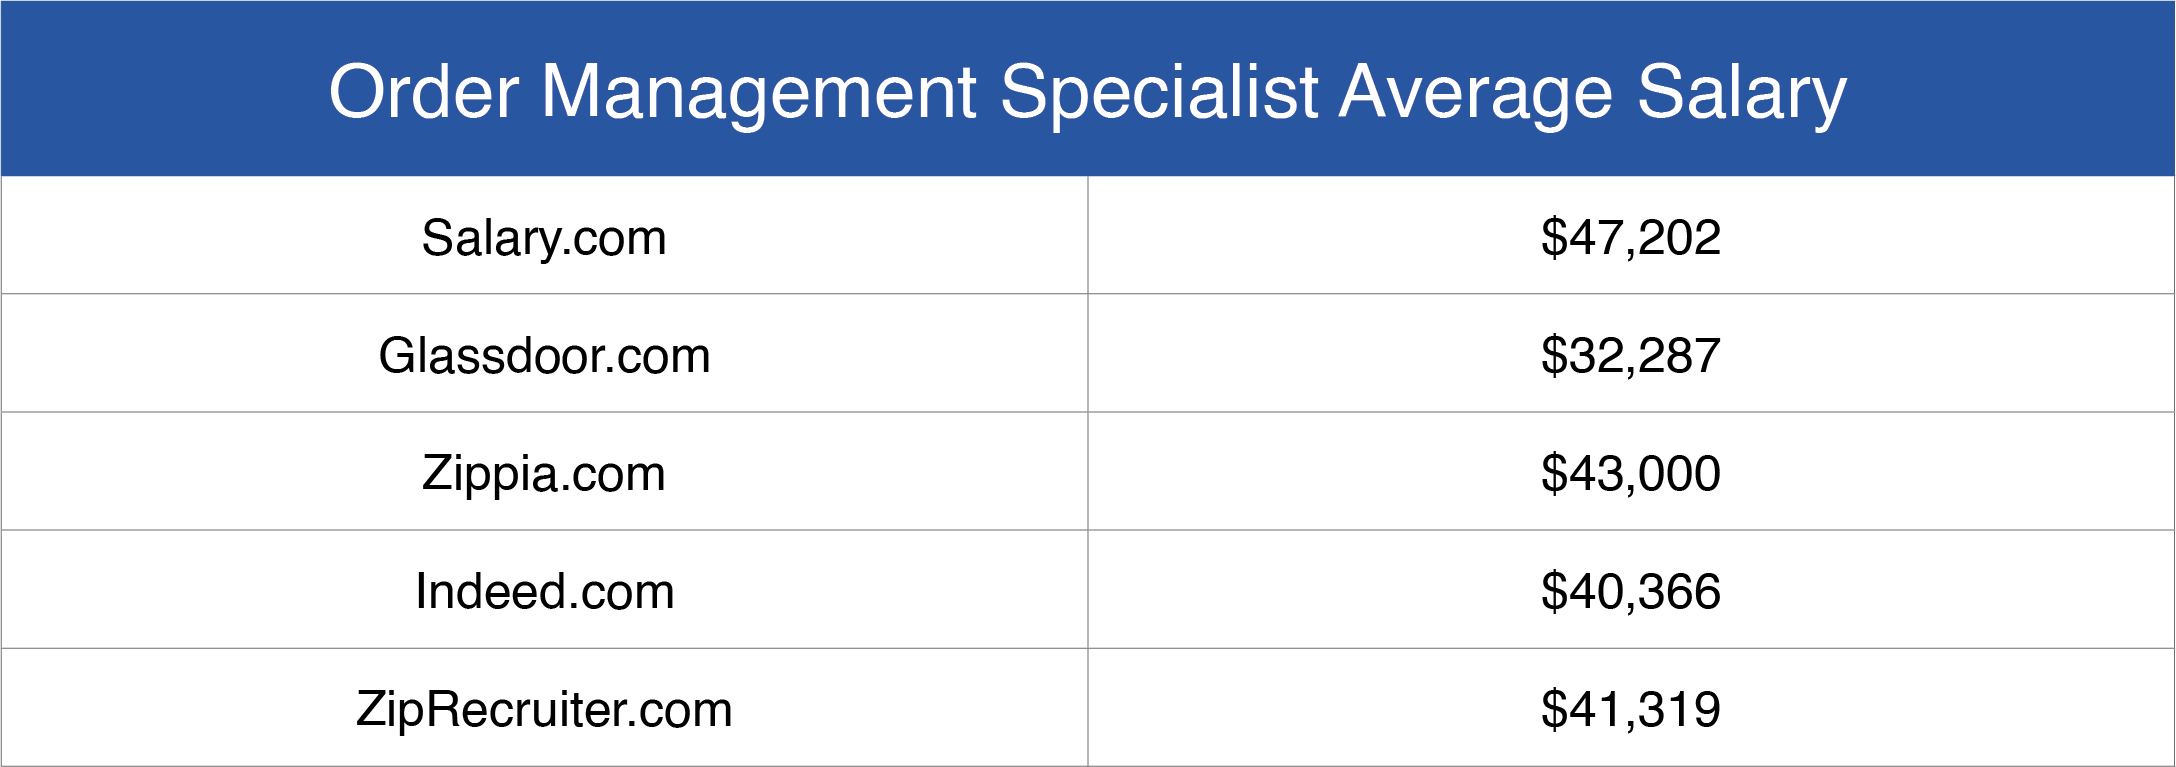 Order Management Specialist Salary